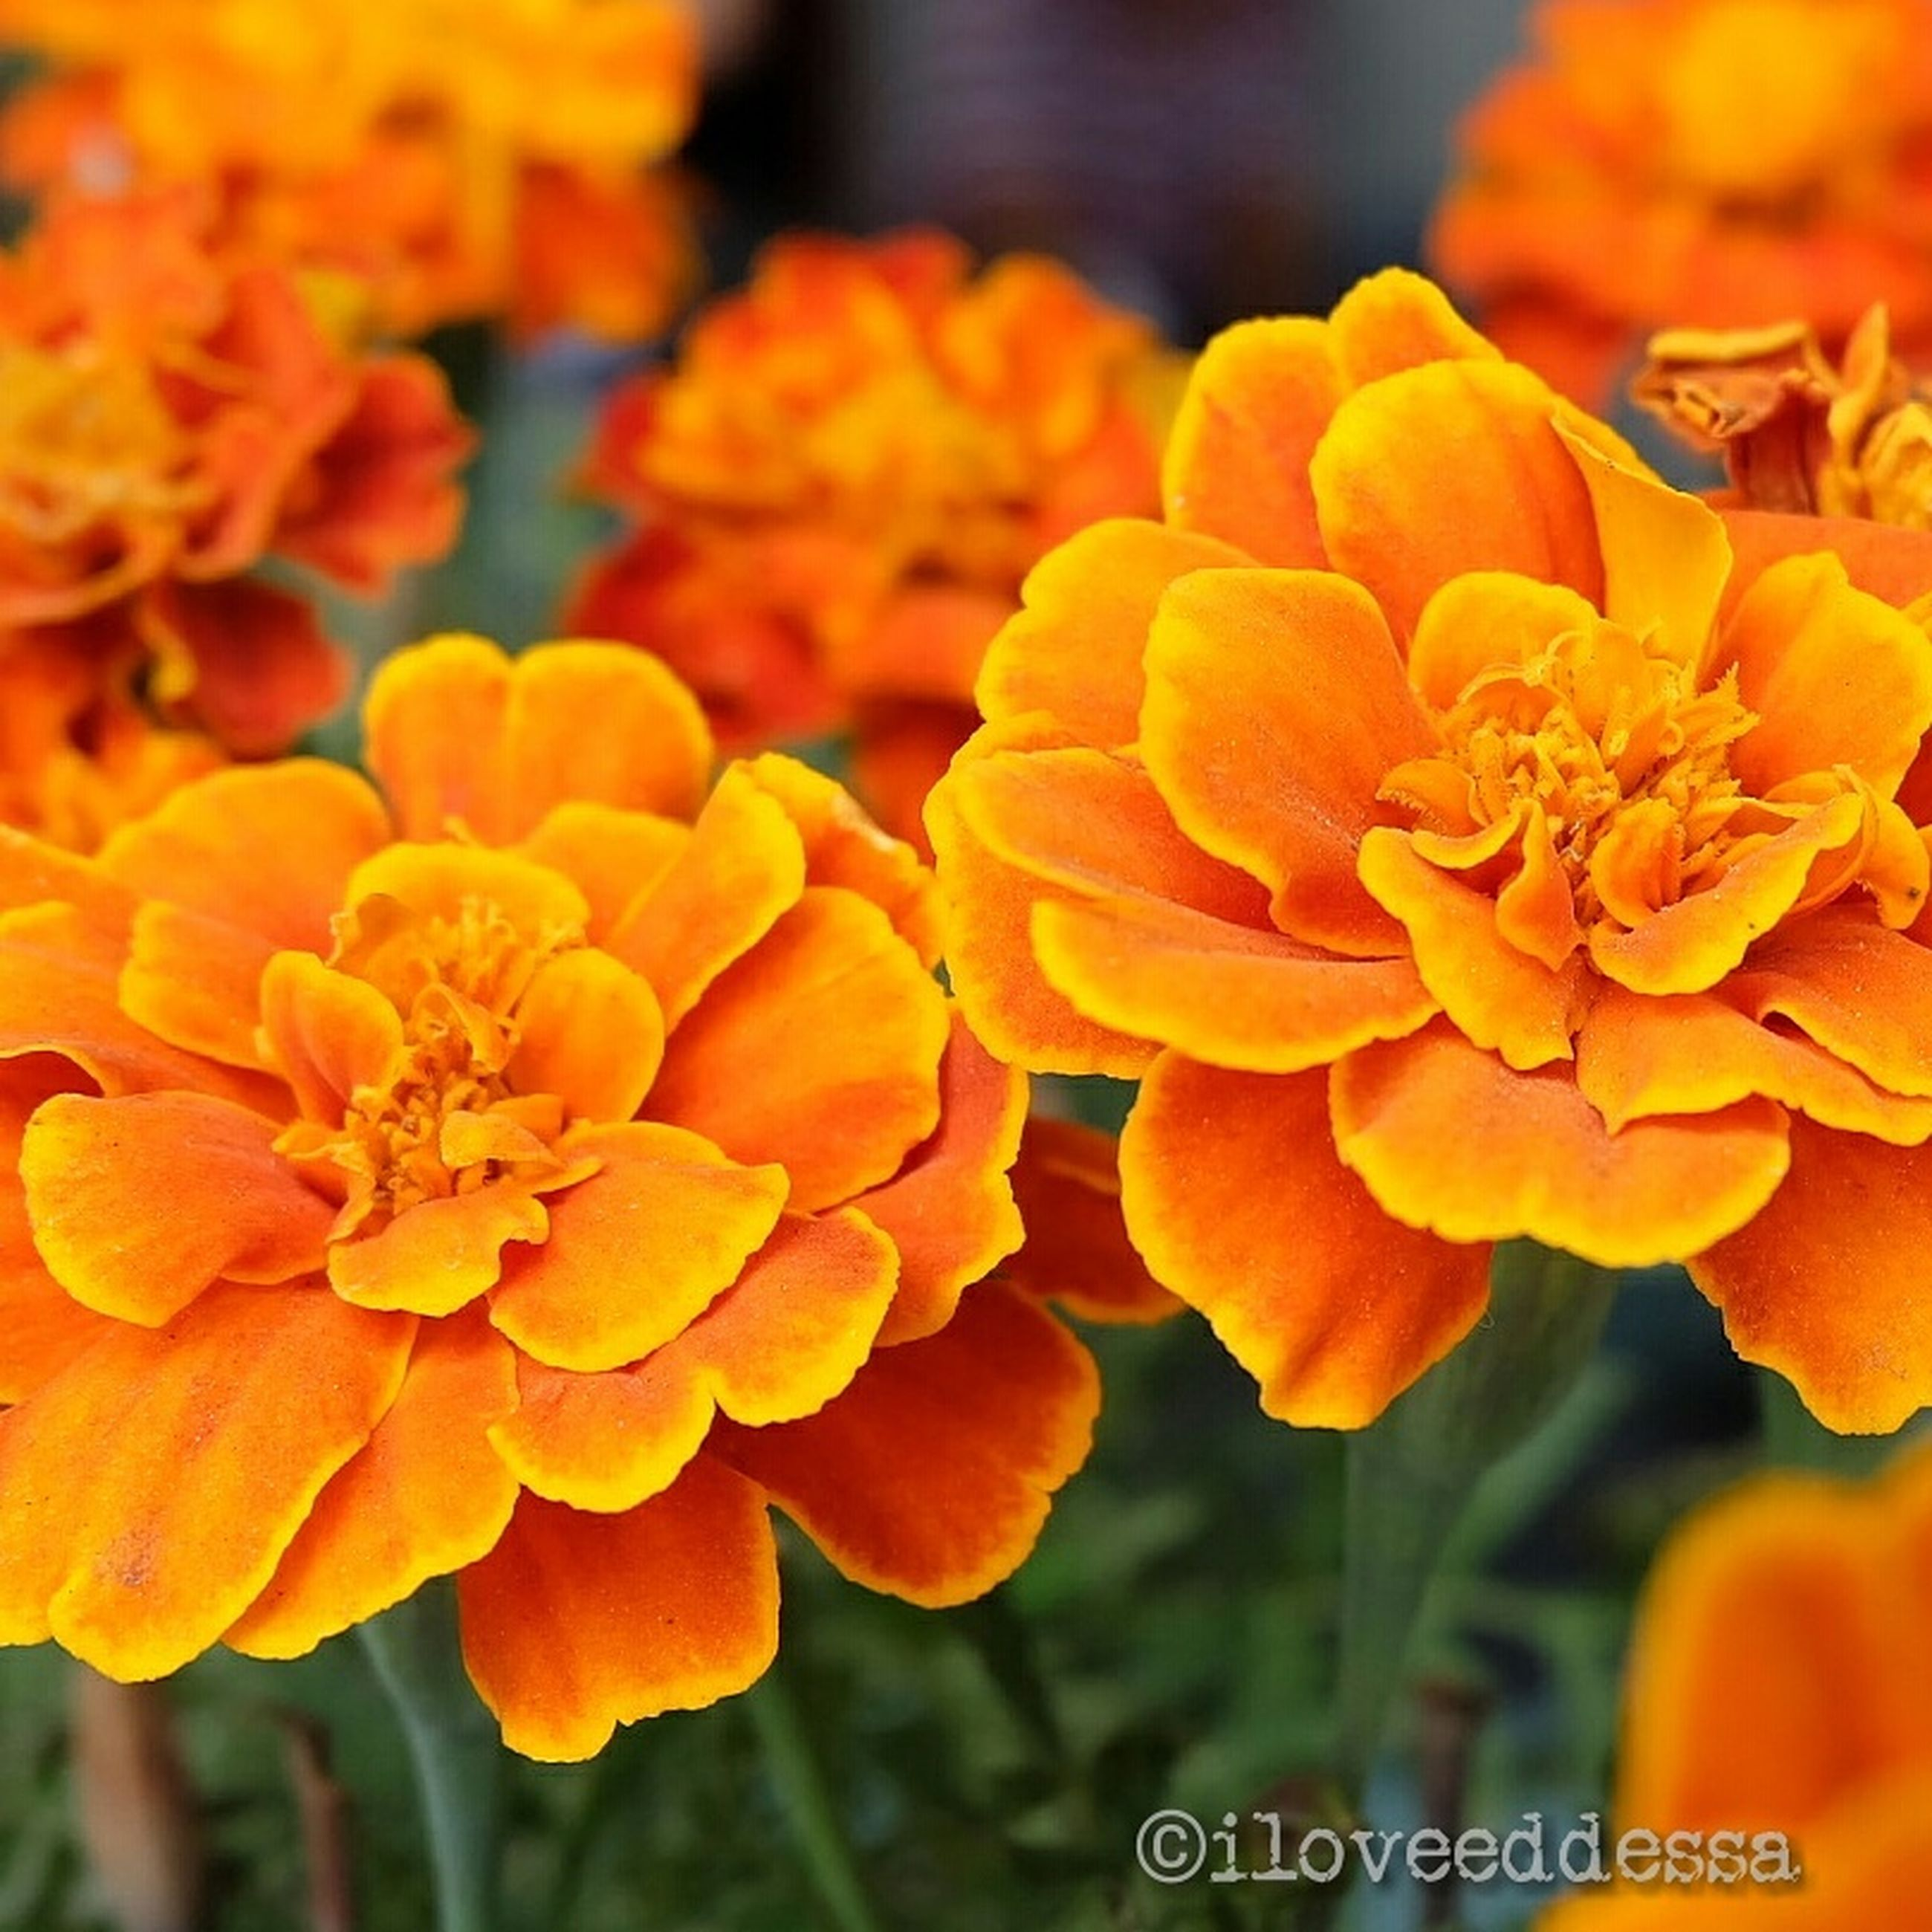 flower, petal, freshness, focus on foreground, close-up, yellow, flower head, fragility, beauty in nature, growth, blooming, orange color, nature, day, no people, selective focus, park - man made space, outdoors, plant, abundance